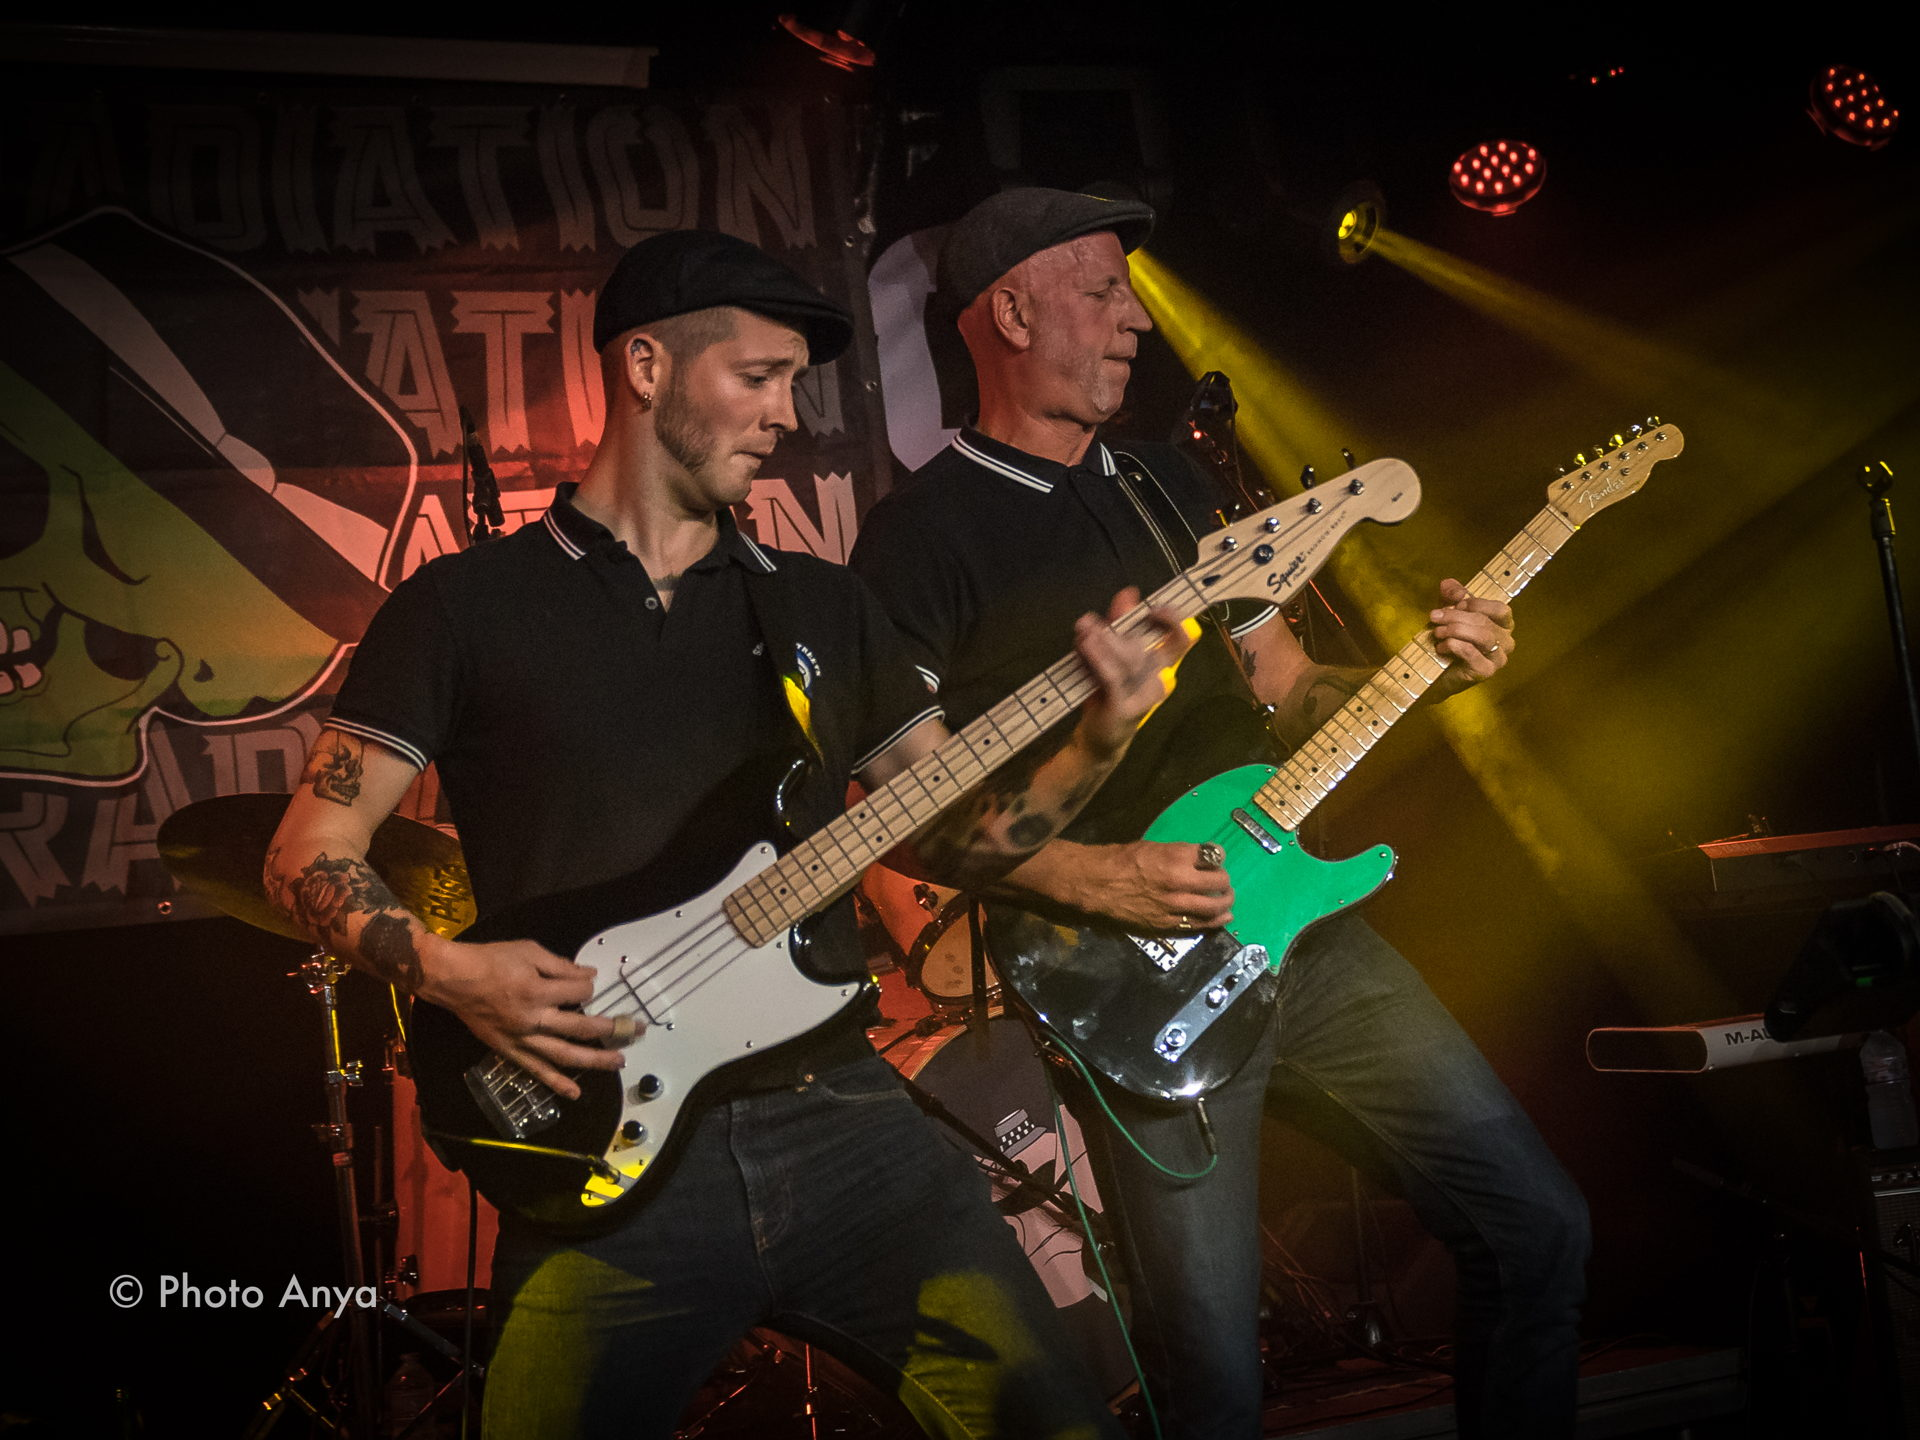 Rude Radiation op 26 oktober 2019 in het voorprogramma van Mark Foggo in Het Podium. Foto's door Photo Anya